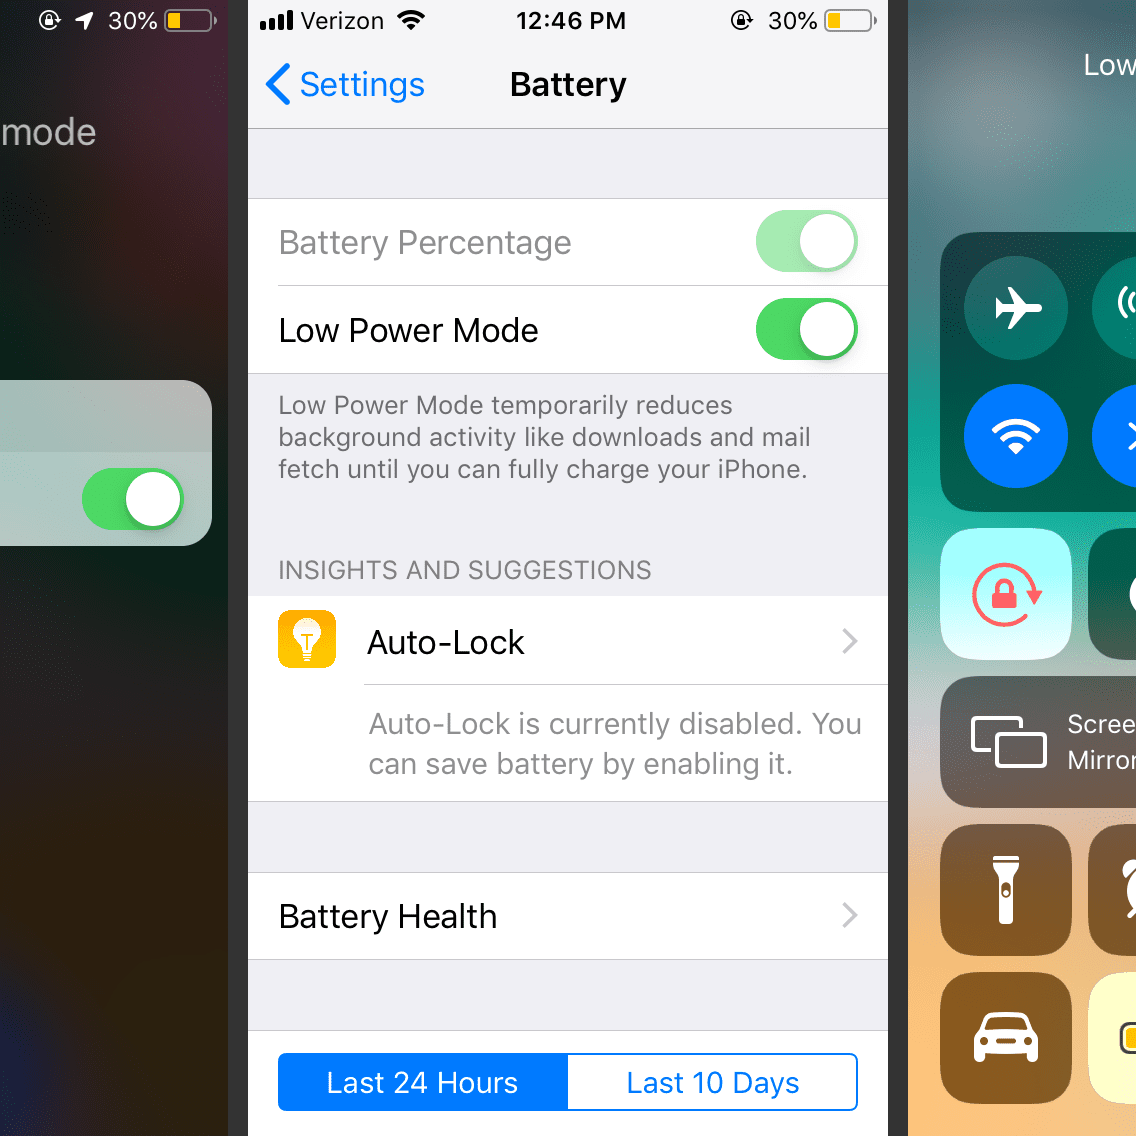 How To Use Iphone Low Power Mode For More Battery Life